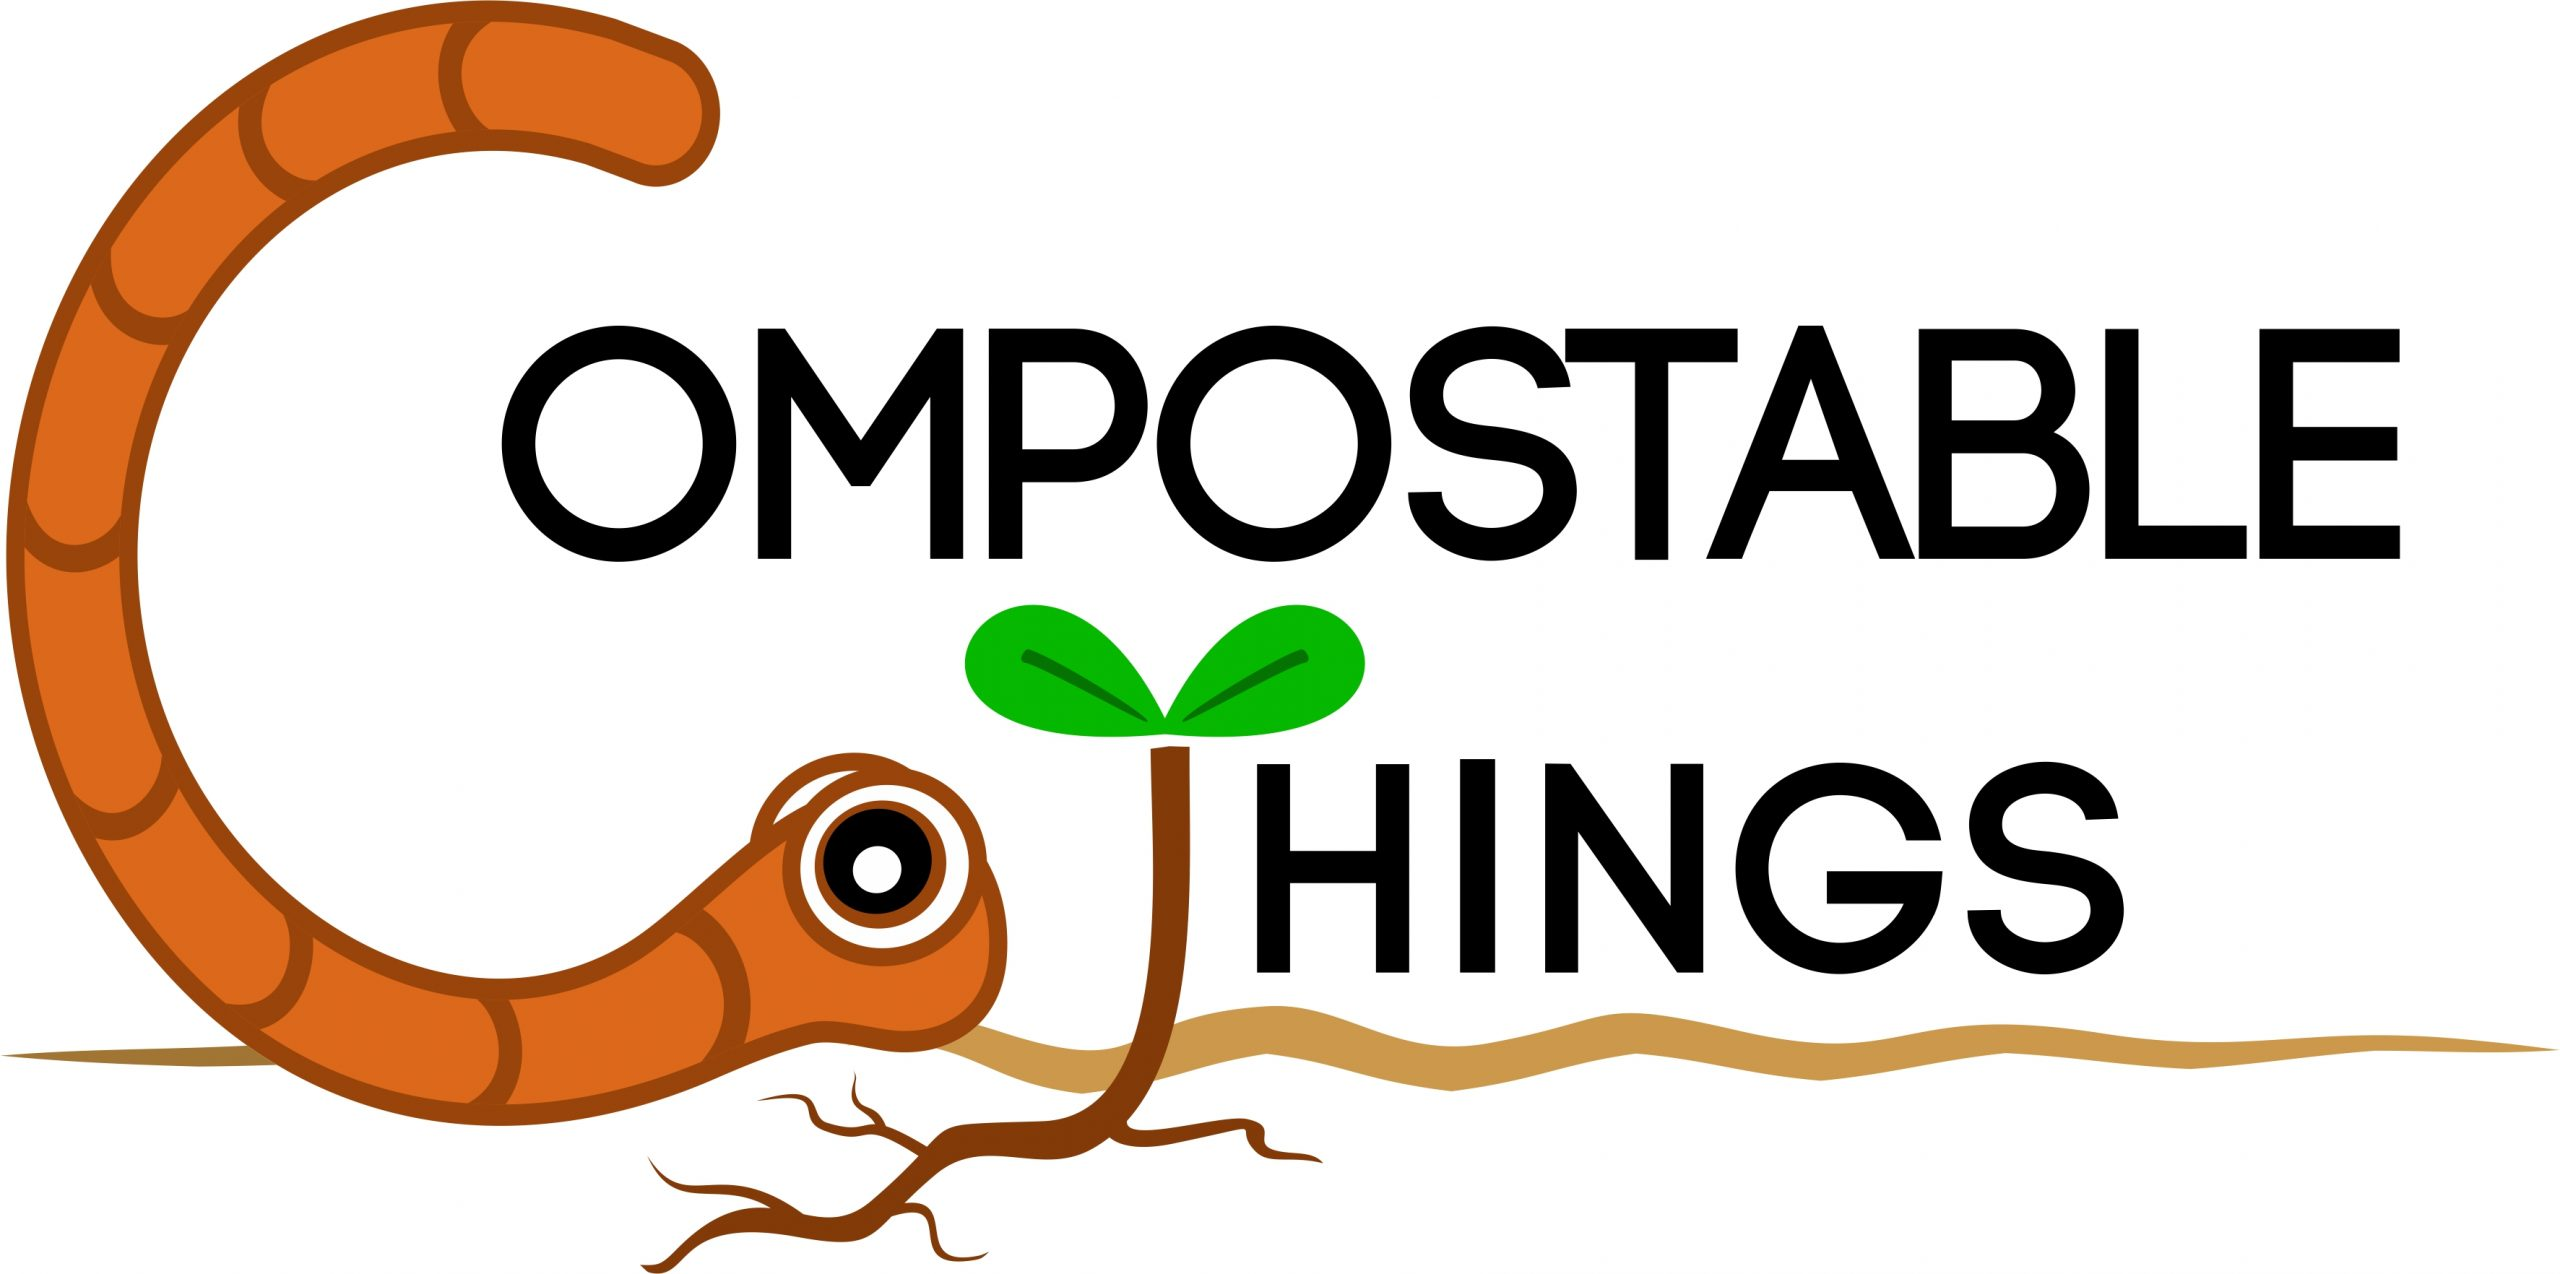 Compostablethings